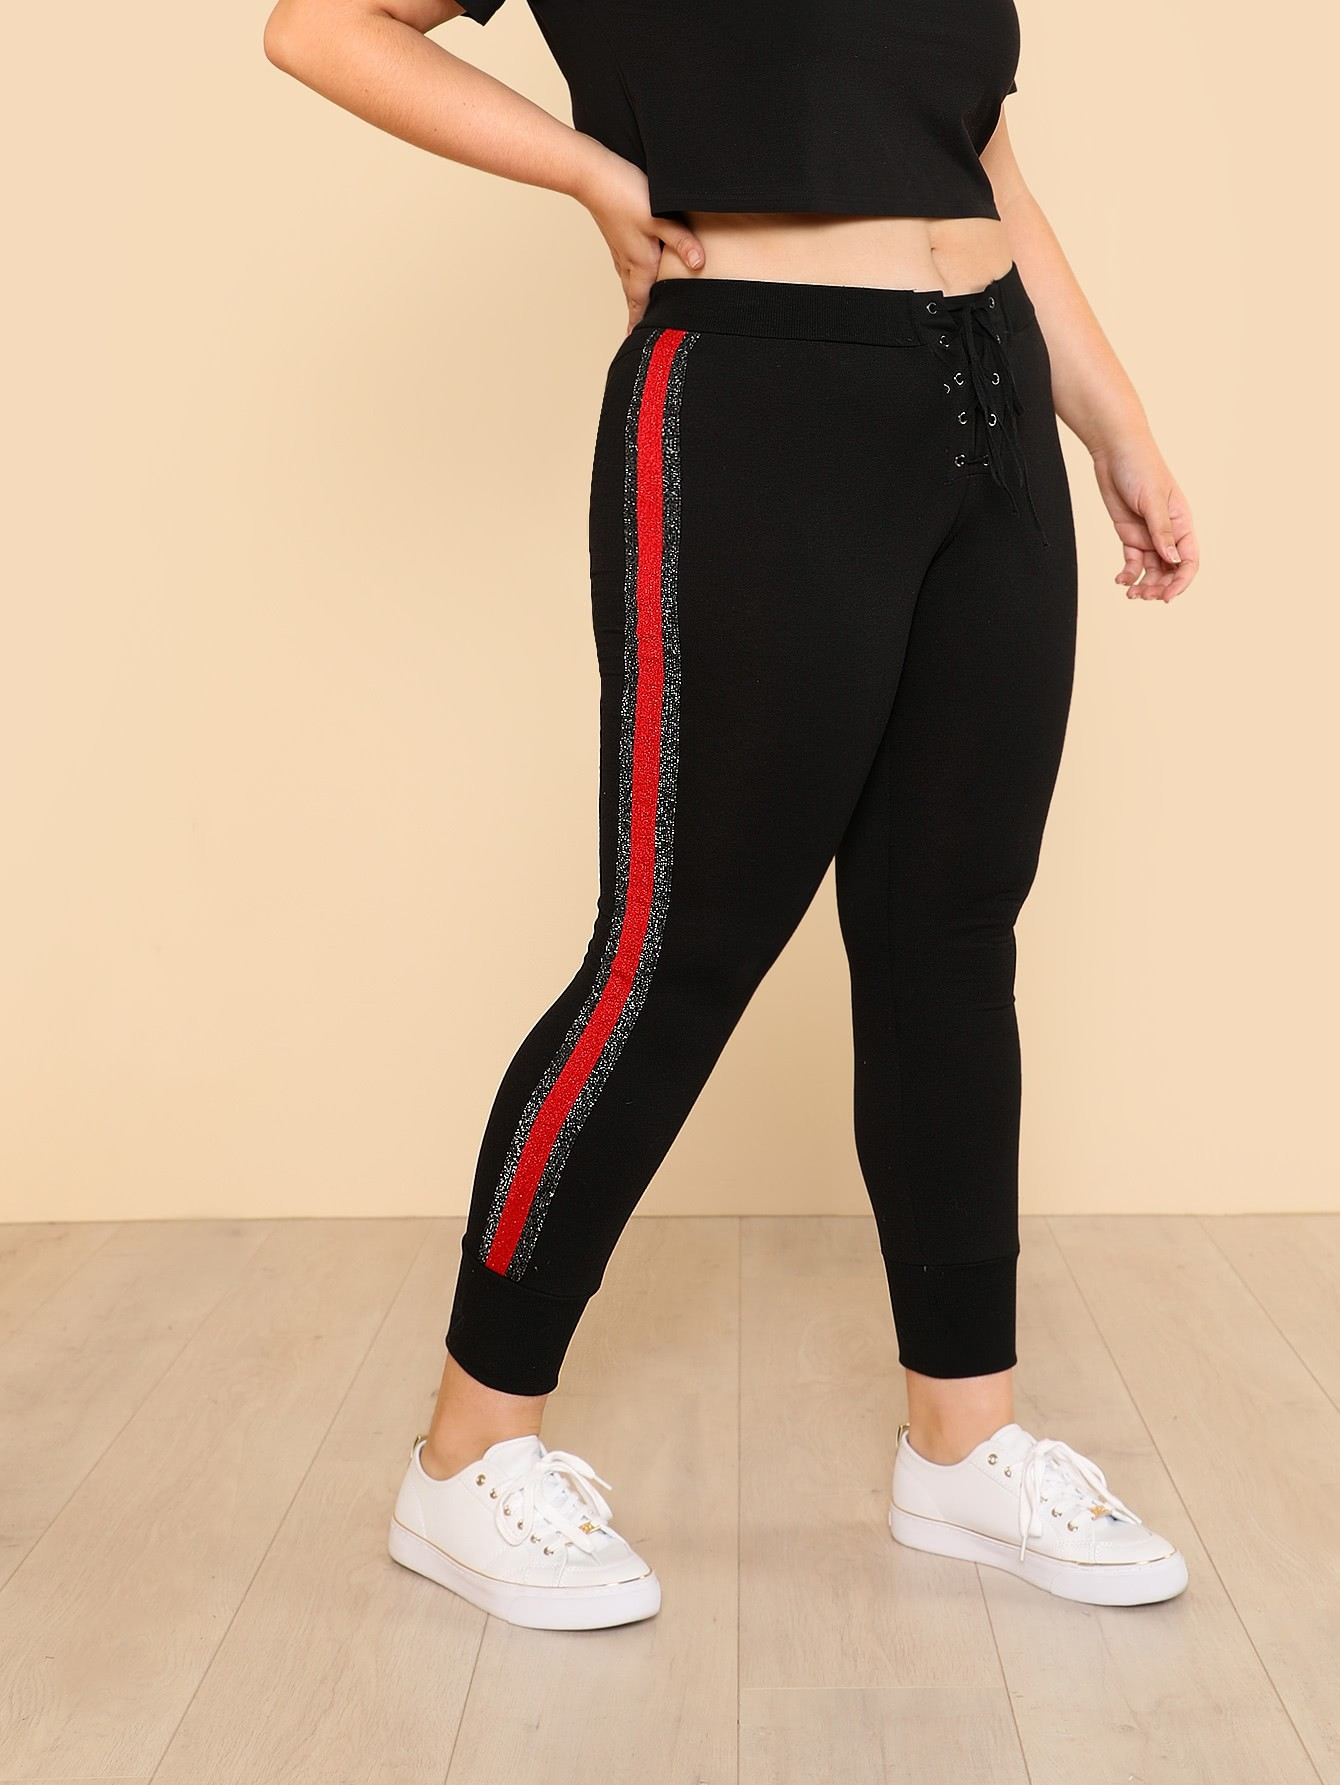 Grommet Lace Up Fly Striped Side Sweatpants striped grommet lace up dropped shoulder top